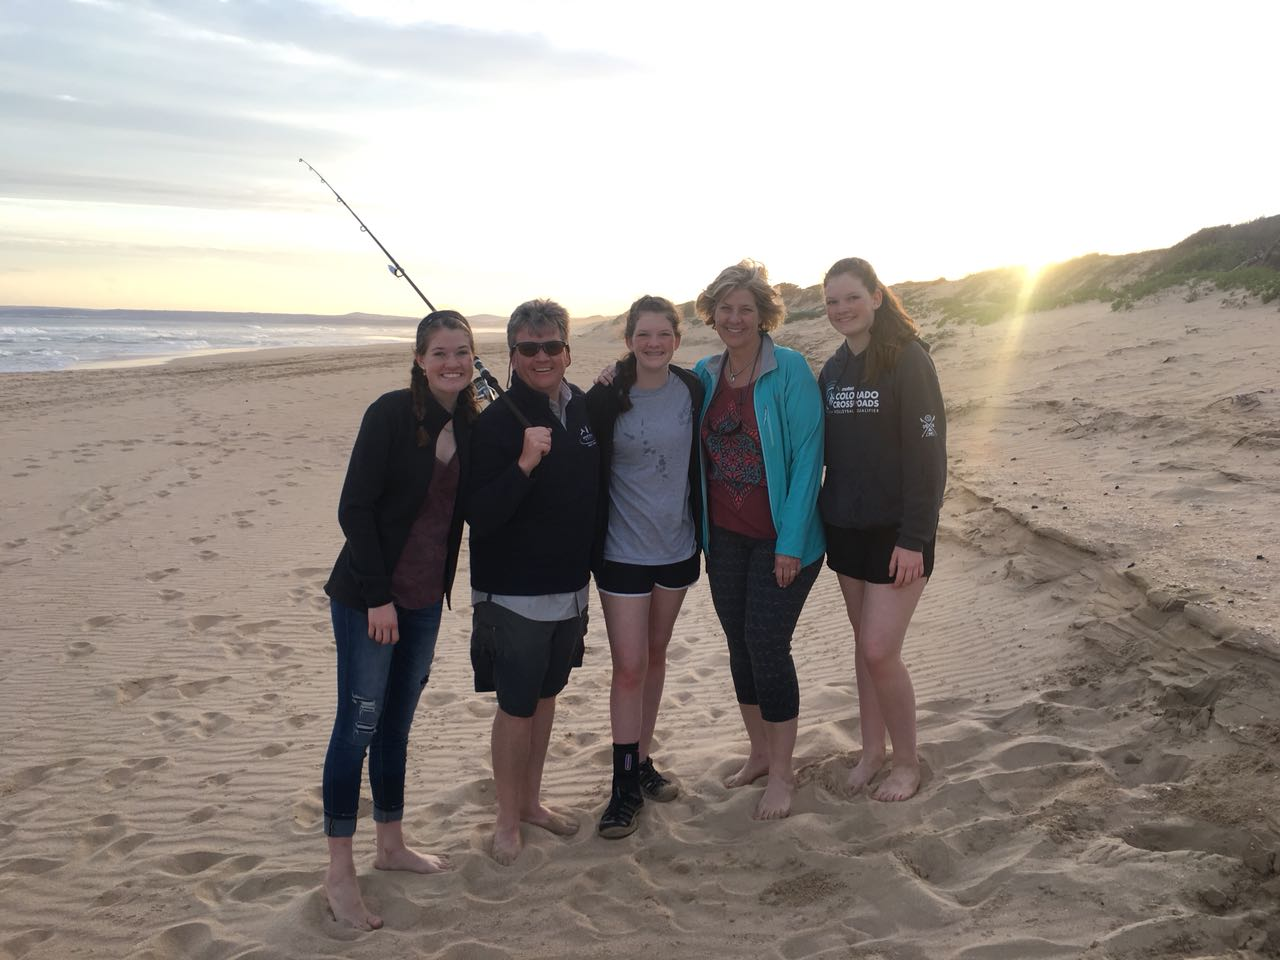 June 1, 2019: Co-Host Kevin Flesch and Family highlight their South Africa family vacation with Bushmans Quiver African Safaris